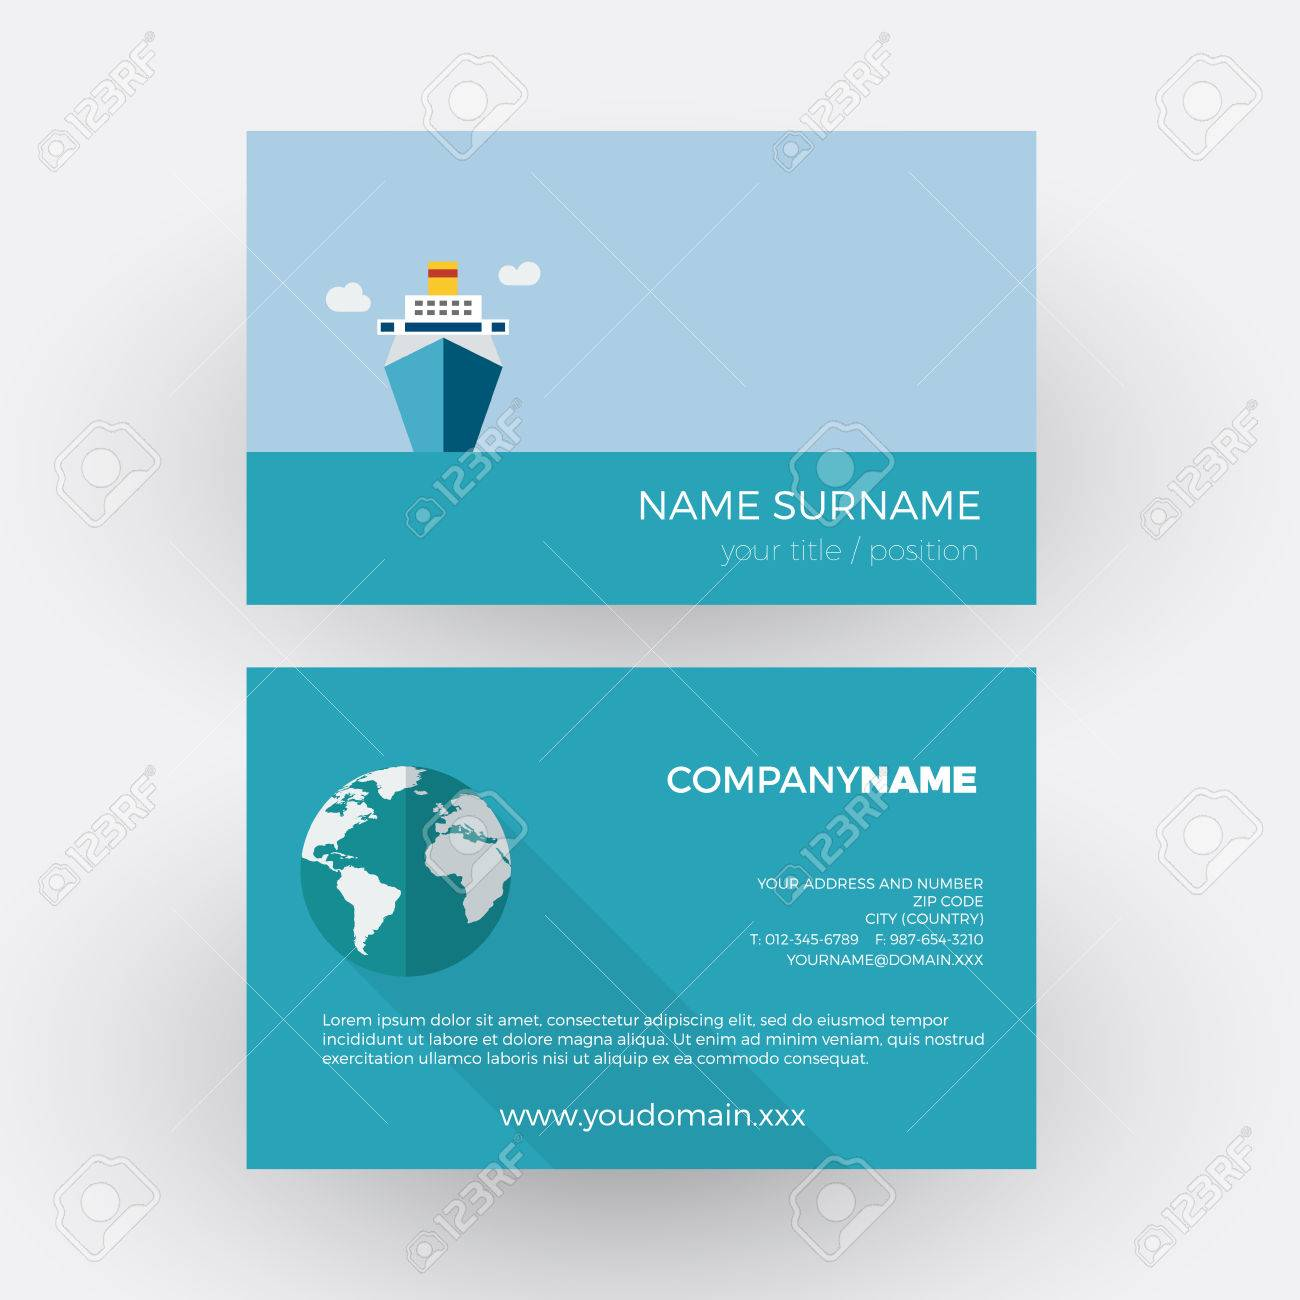 Travel Agency Business Card Templates Free Download Choice Image ...